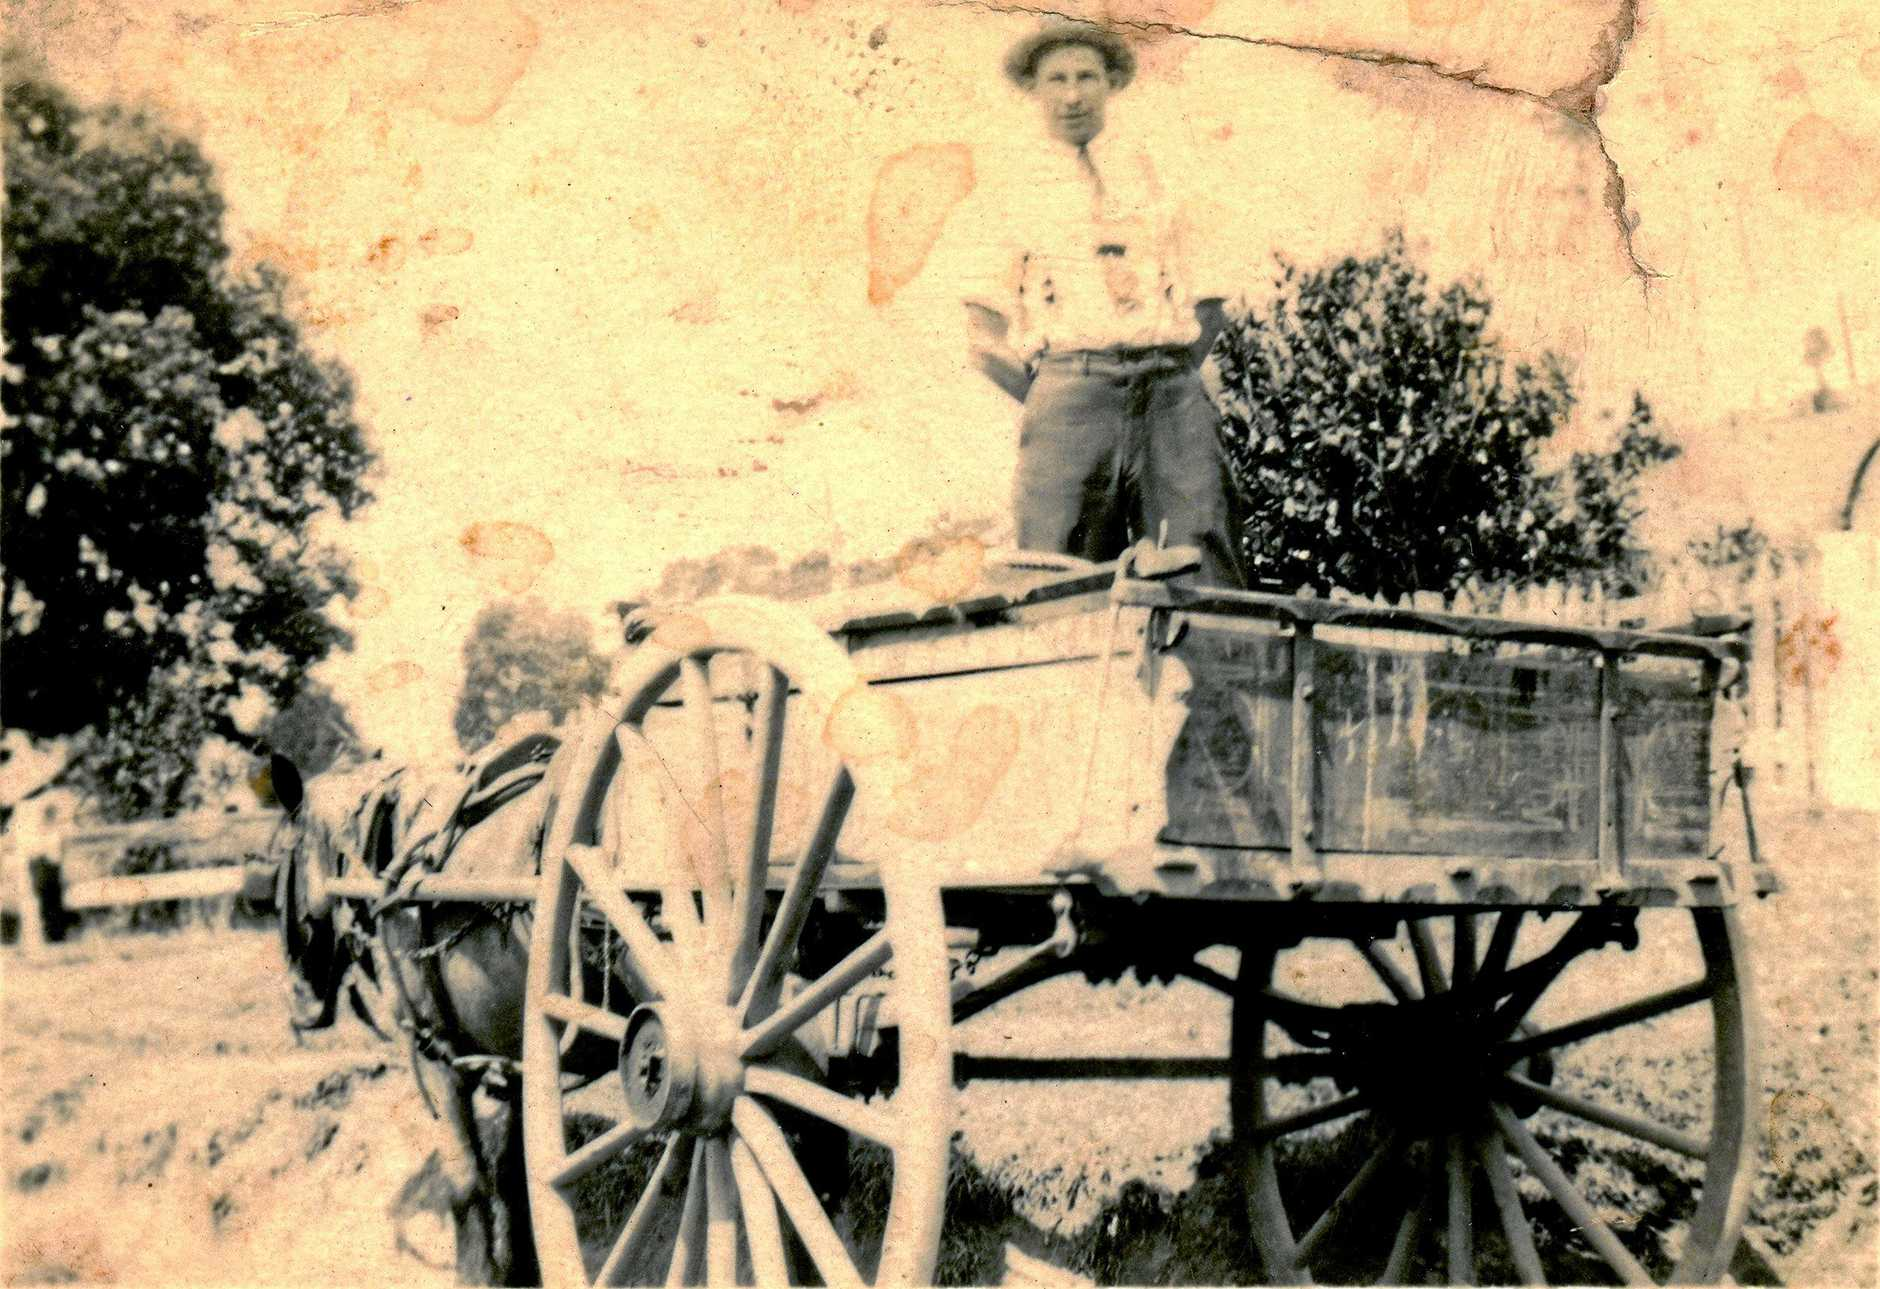 UG-17 - Lionel Mitchell on Loder's delivery cart, C.1924.